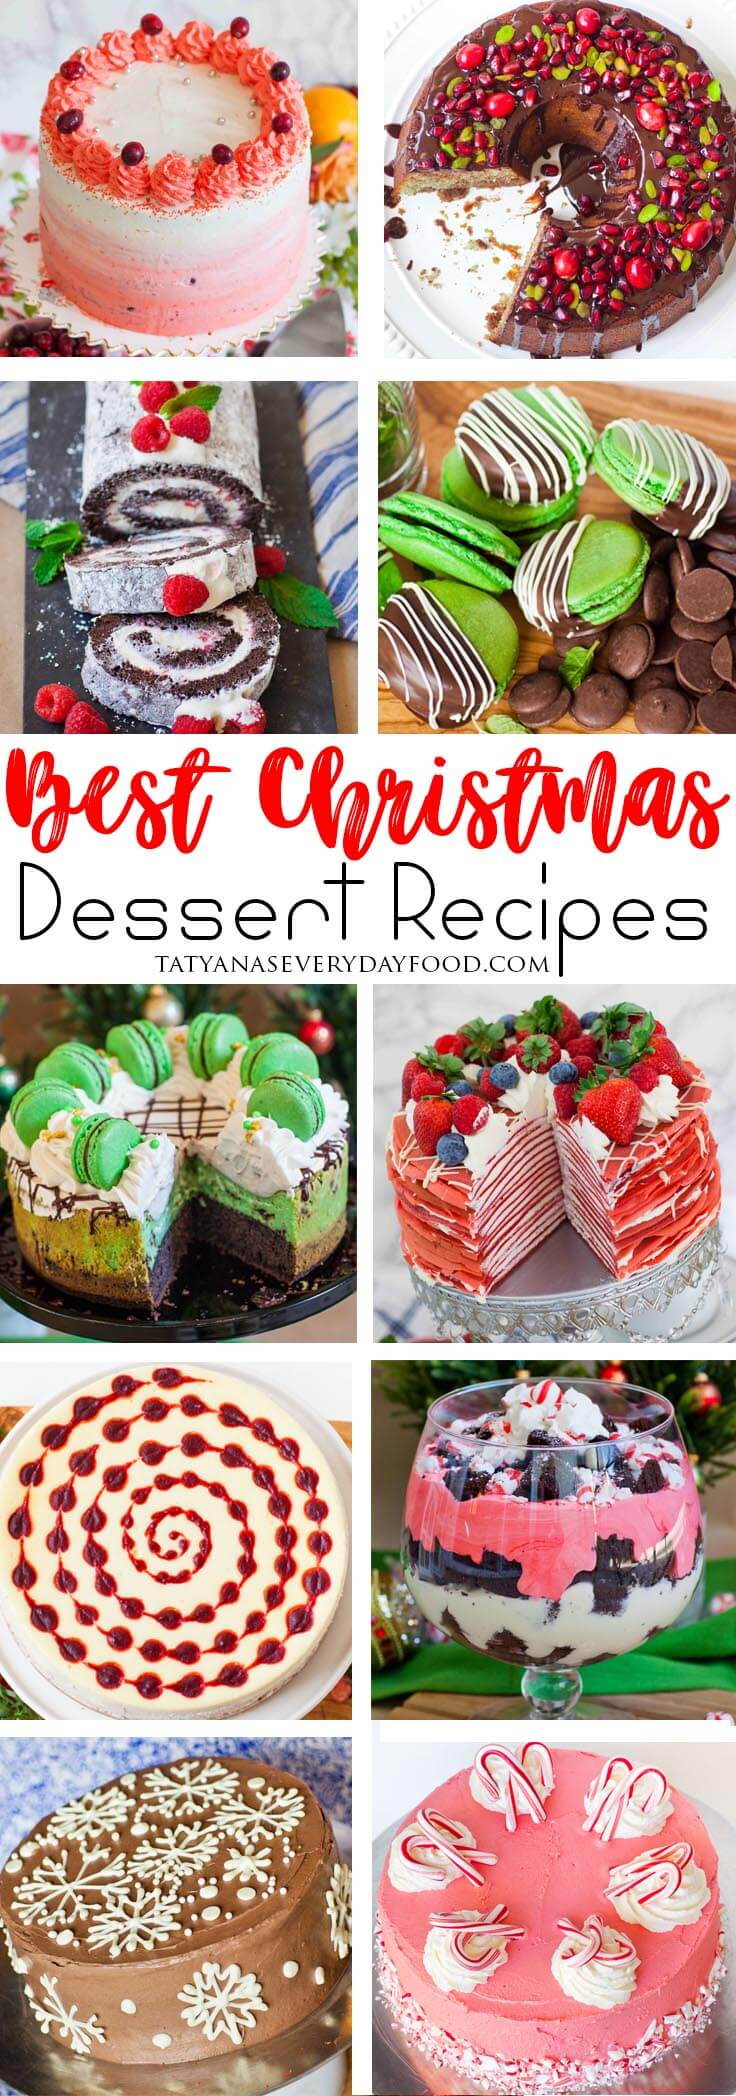 All the Best Christmas Desserts!